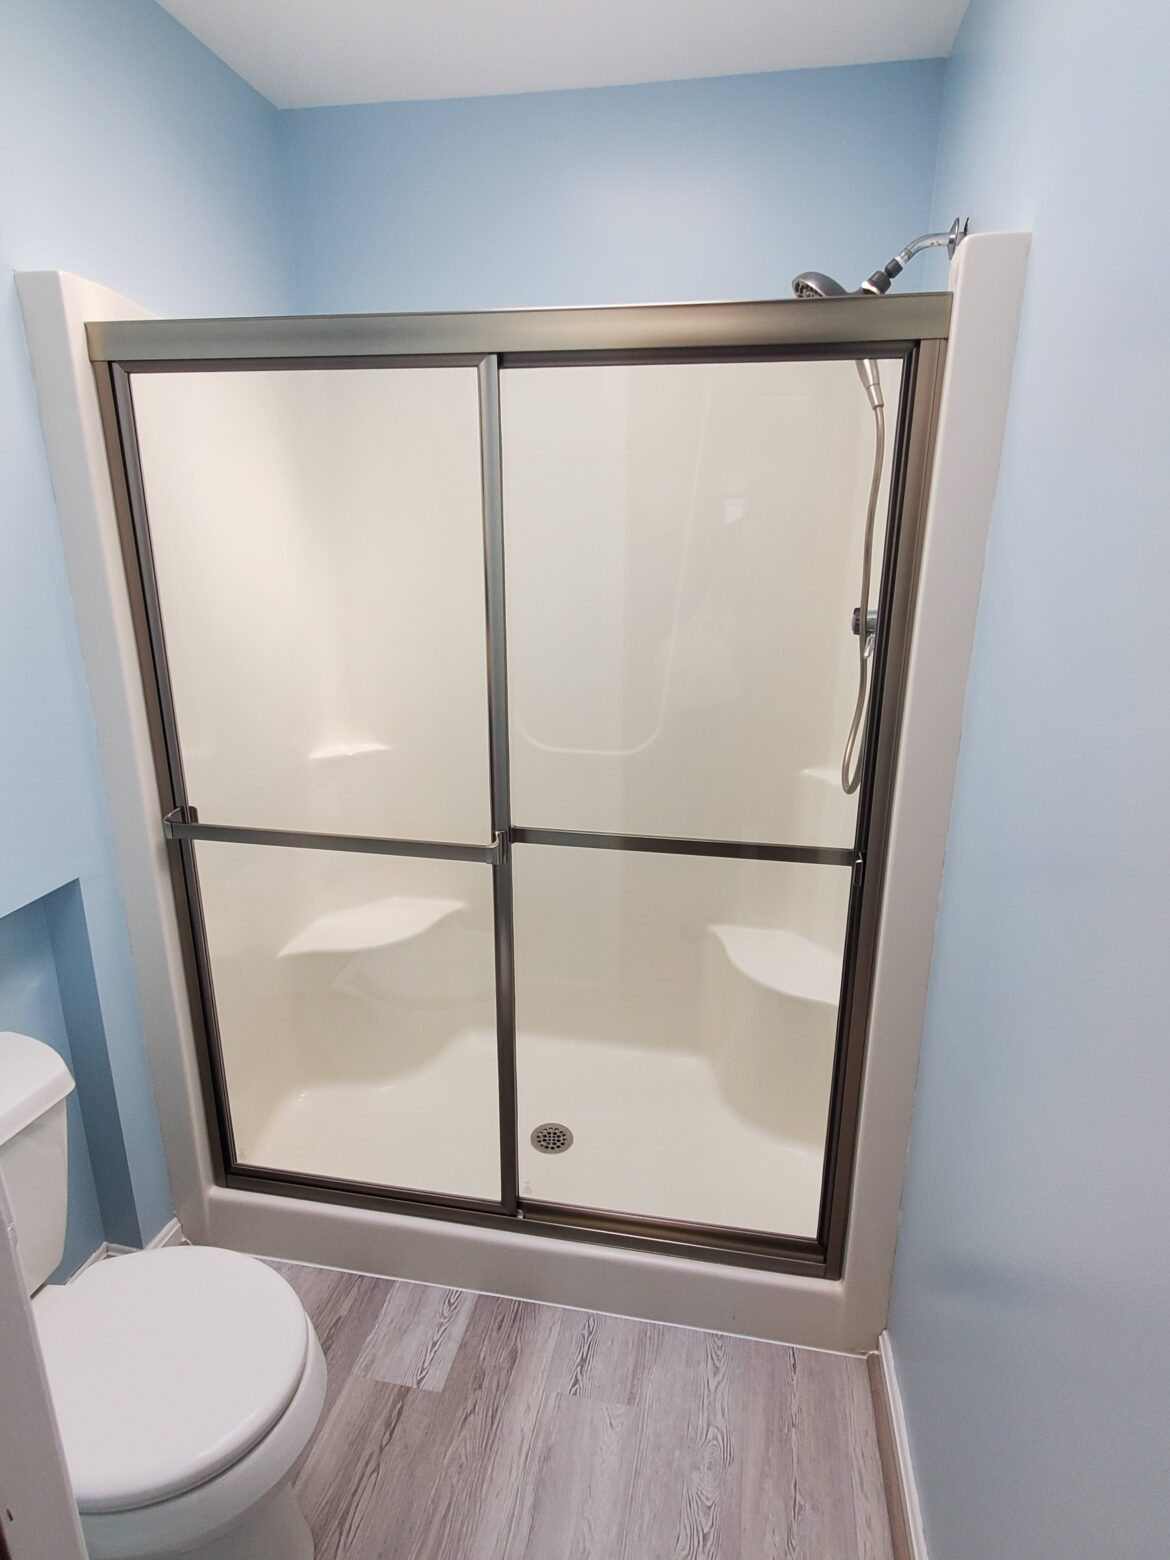 Framed Bypass Sliding Shower Doors in Frederick, MD